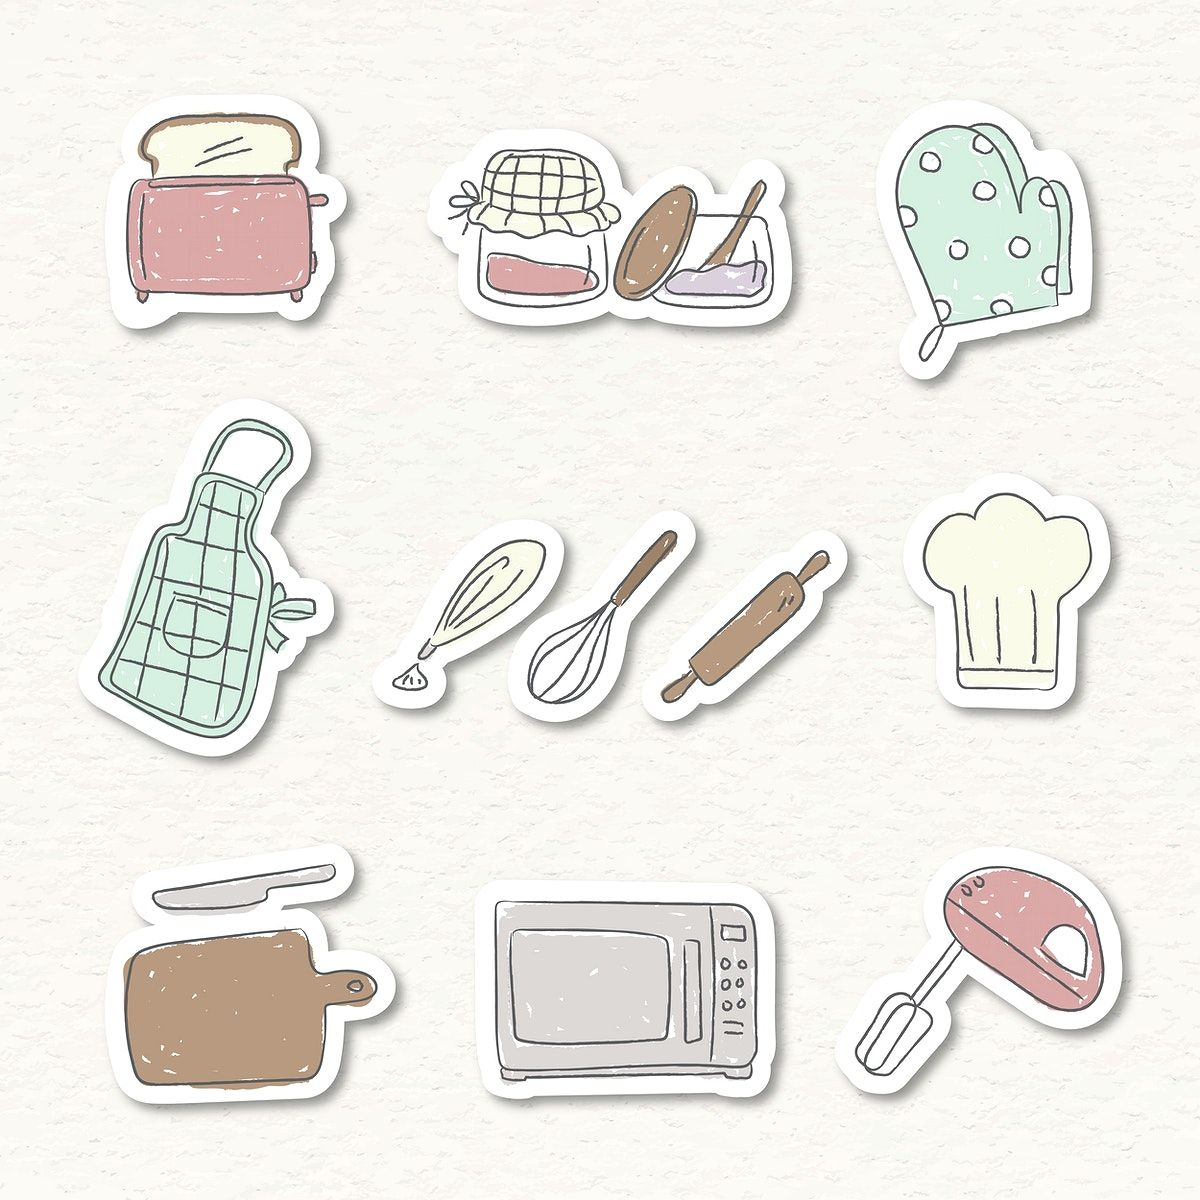 Cute Kitchen Utensils Doodle Sticker Set Vector Free Image By Rawpixel Com Nunny In 2021 Kitchen Stickers Cute Kitchen Print Stickers [ 1200 x 1200 Pixel ]